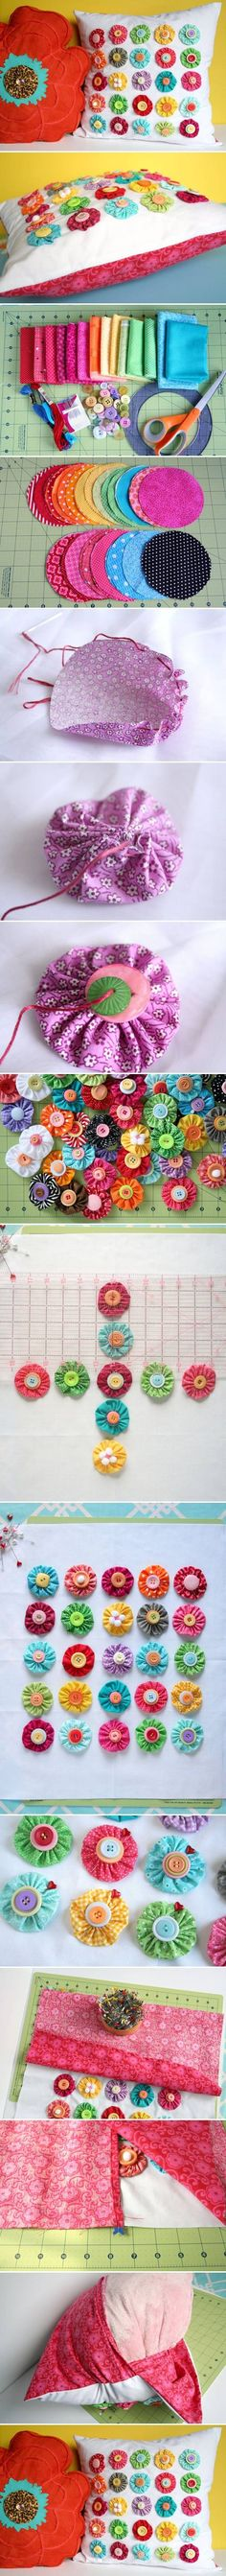 DIY Fabric Decorative Flowers DIY Fabric Decorative Flowers by diyforever